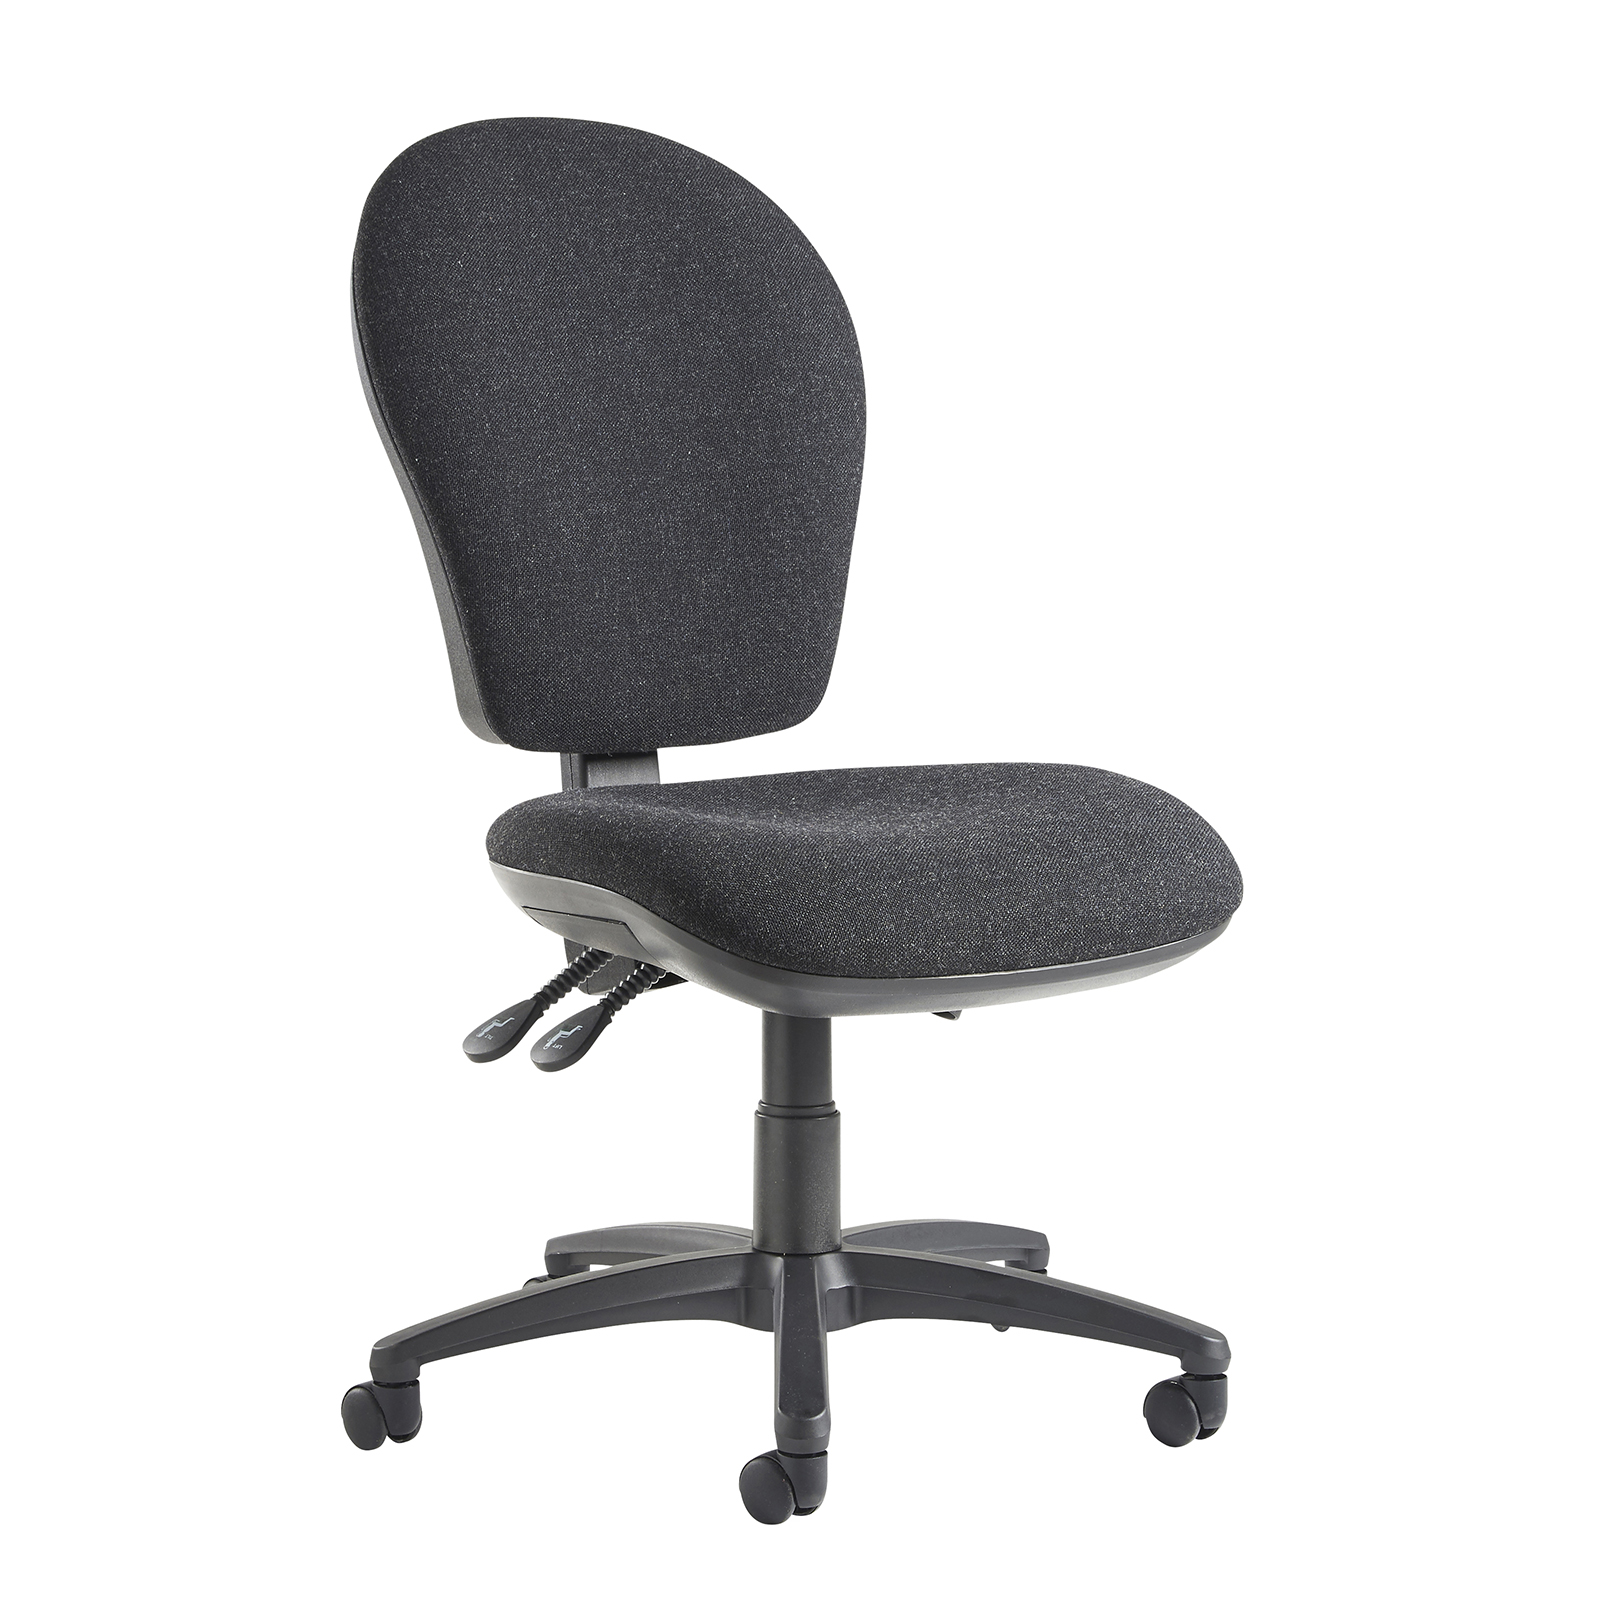 Lento high back operator chair with no arms - charcoal